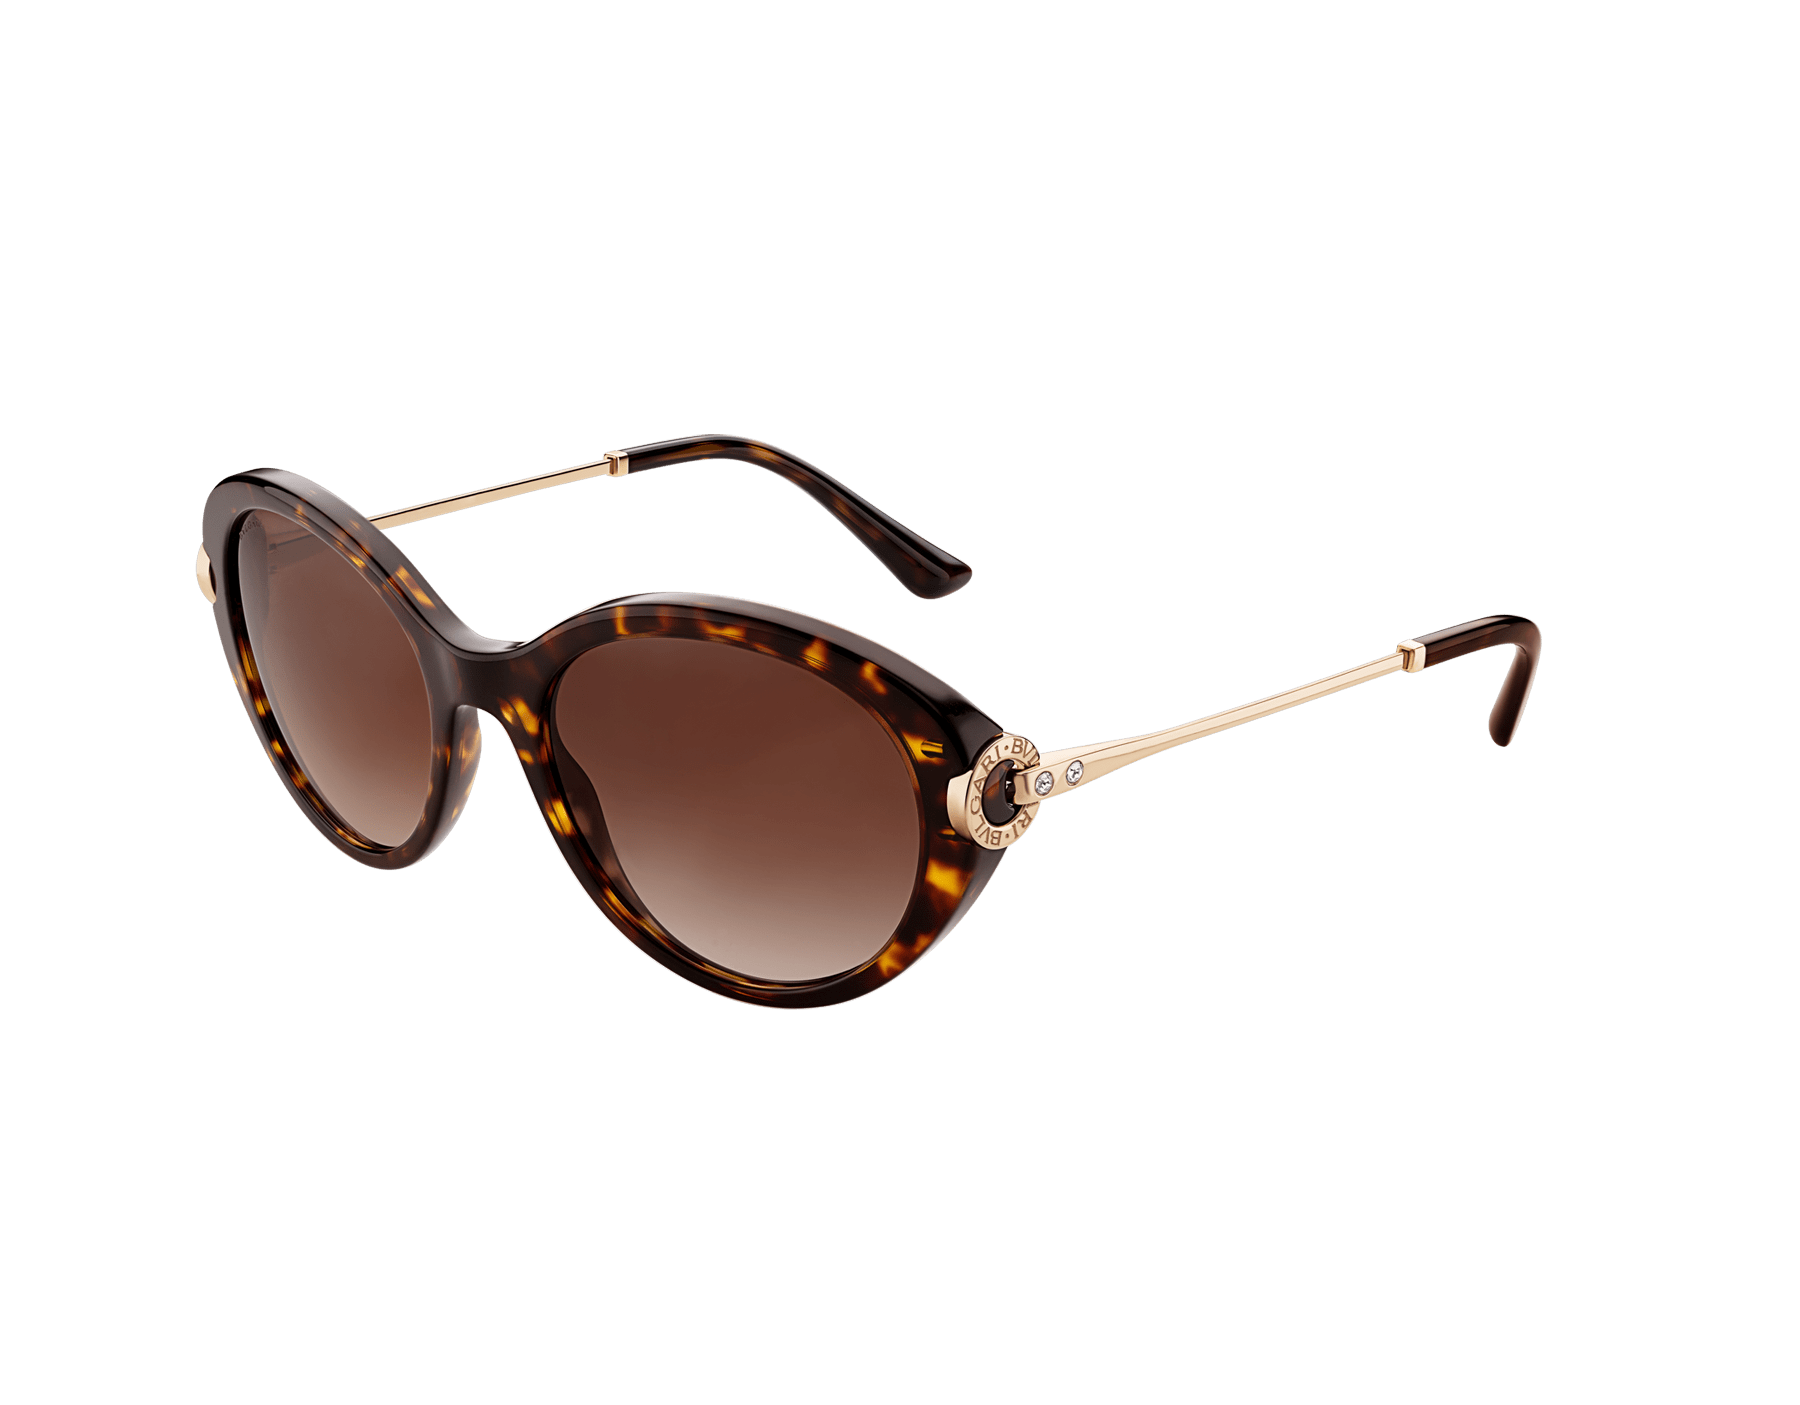 BVLGARI BVLGARI oval acetate sunglasses with metal décor and crystals. 903798 image 1